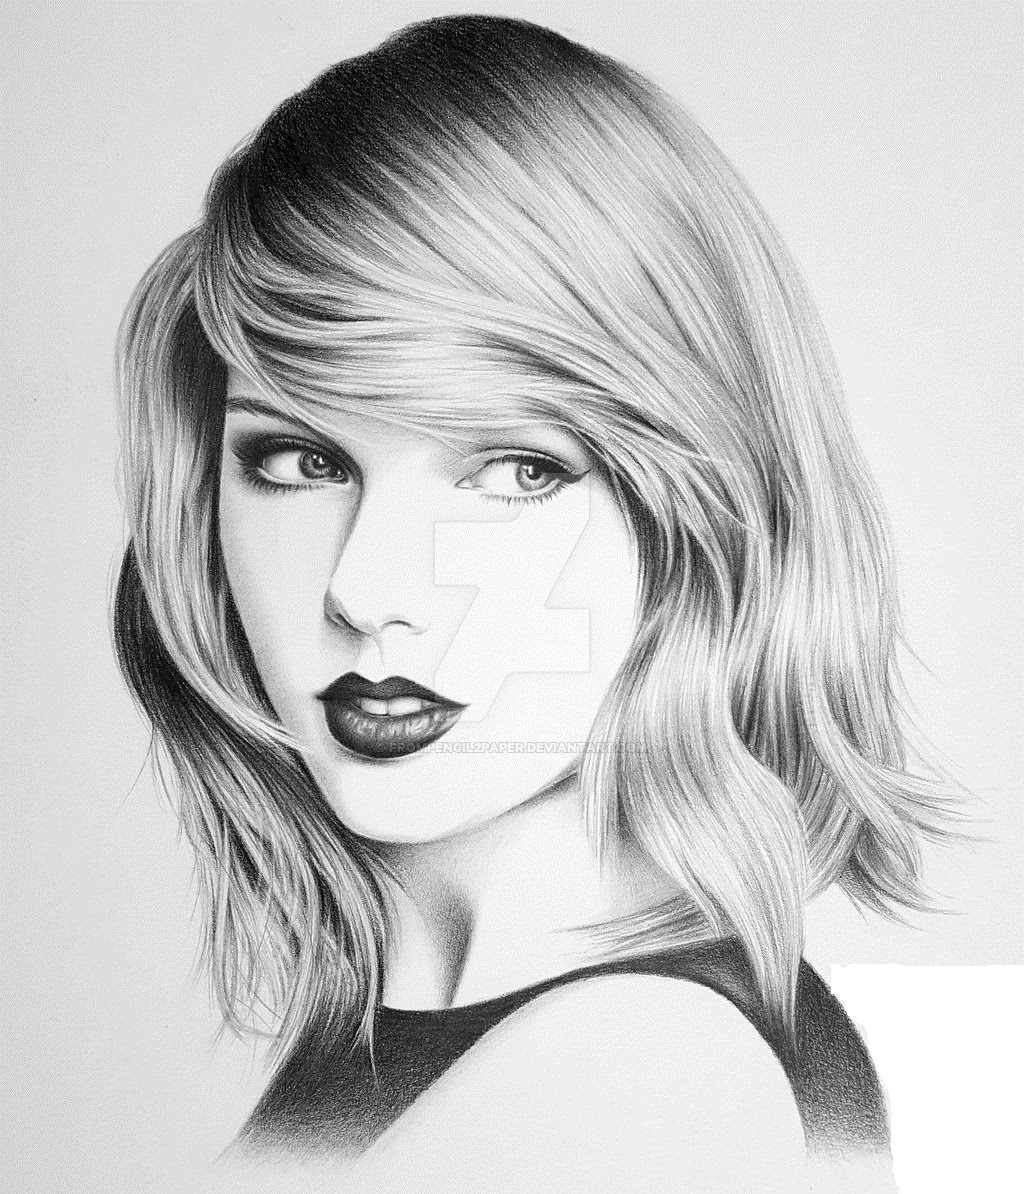 Drawn portrait taylor swift Drawing Swift Bir Dakikada Pencil